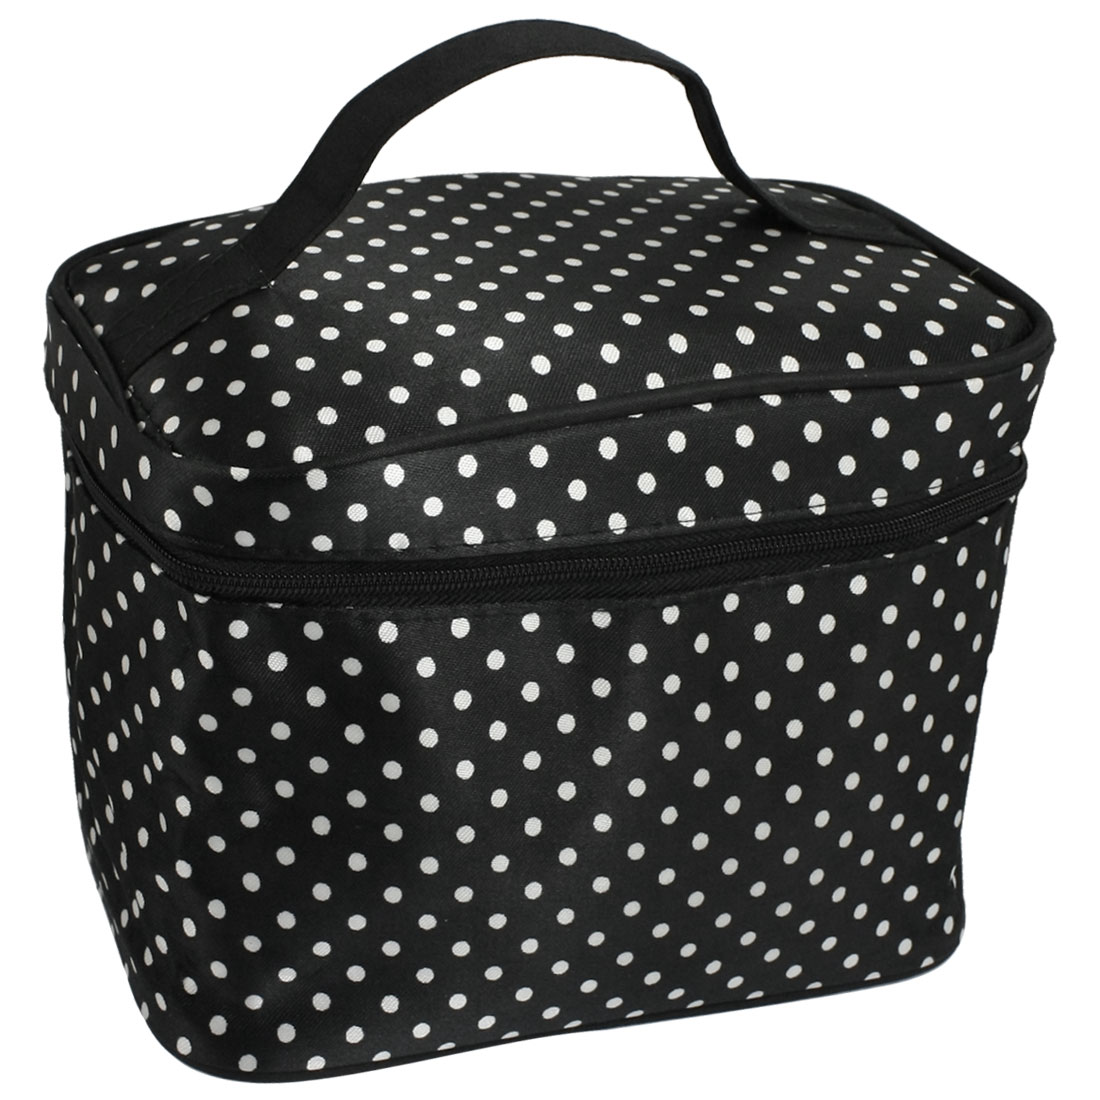 Lady Black Polryster Dots Print Zipper Cosmetic Makeup Bag